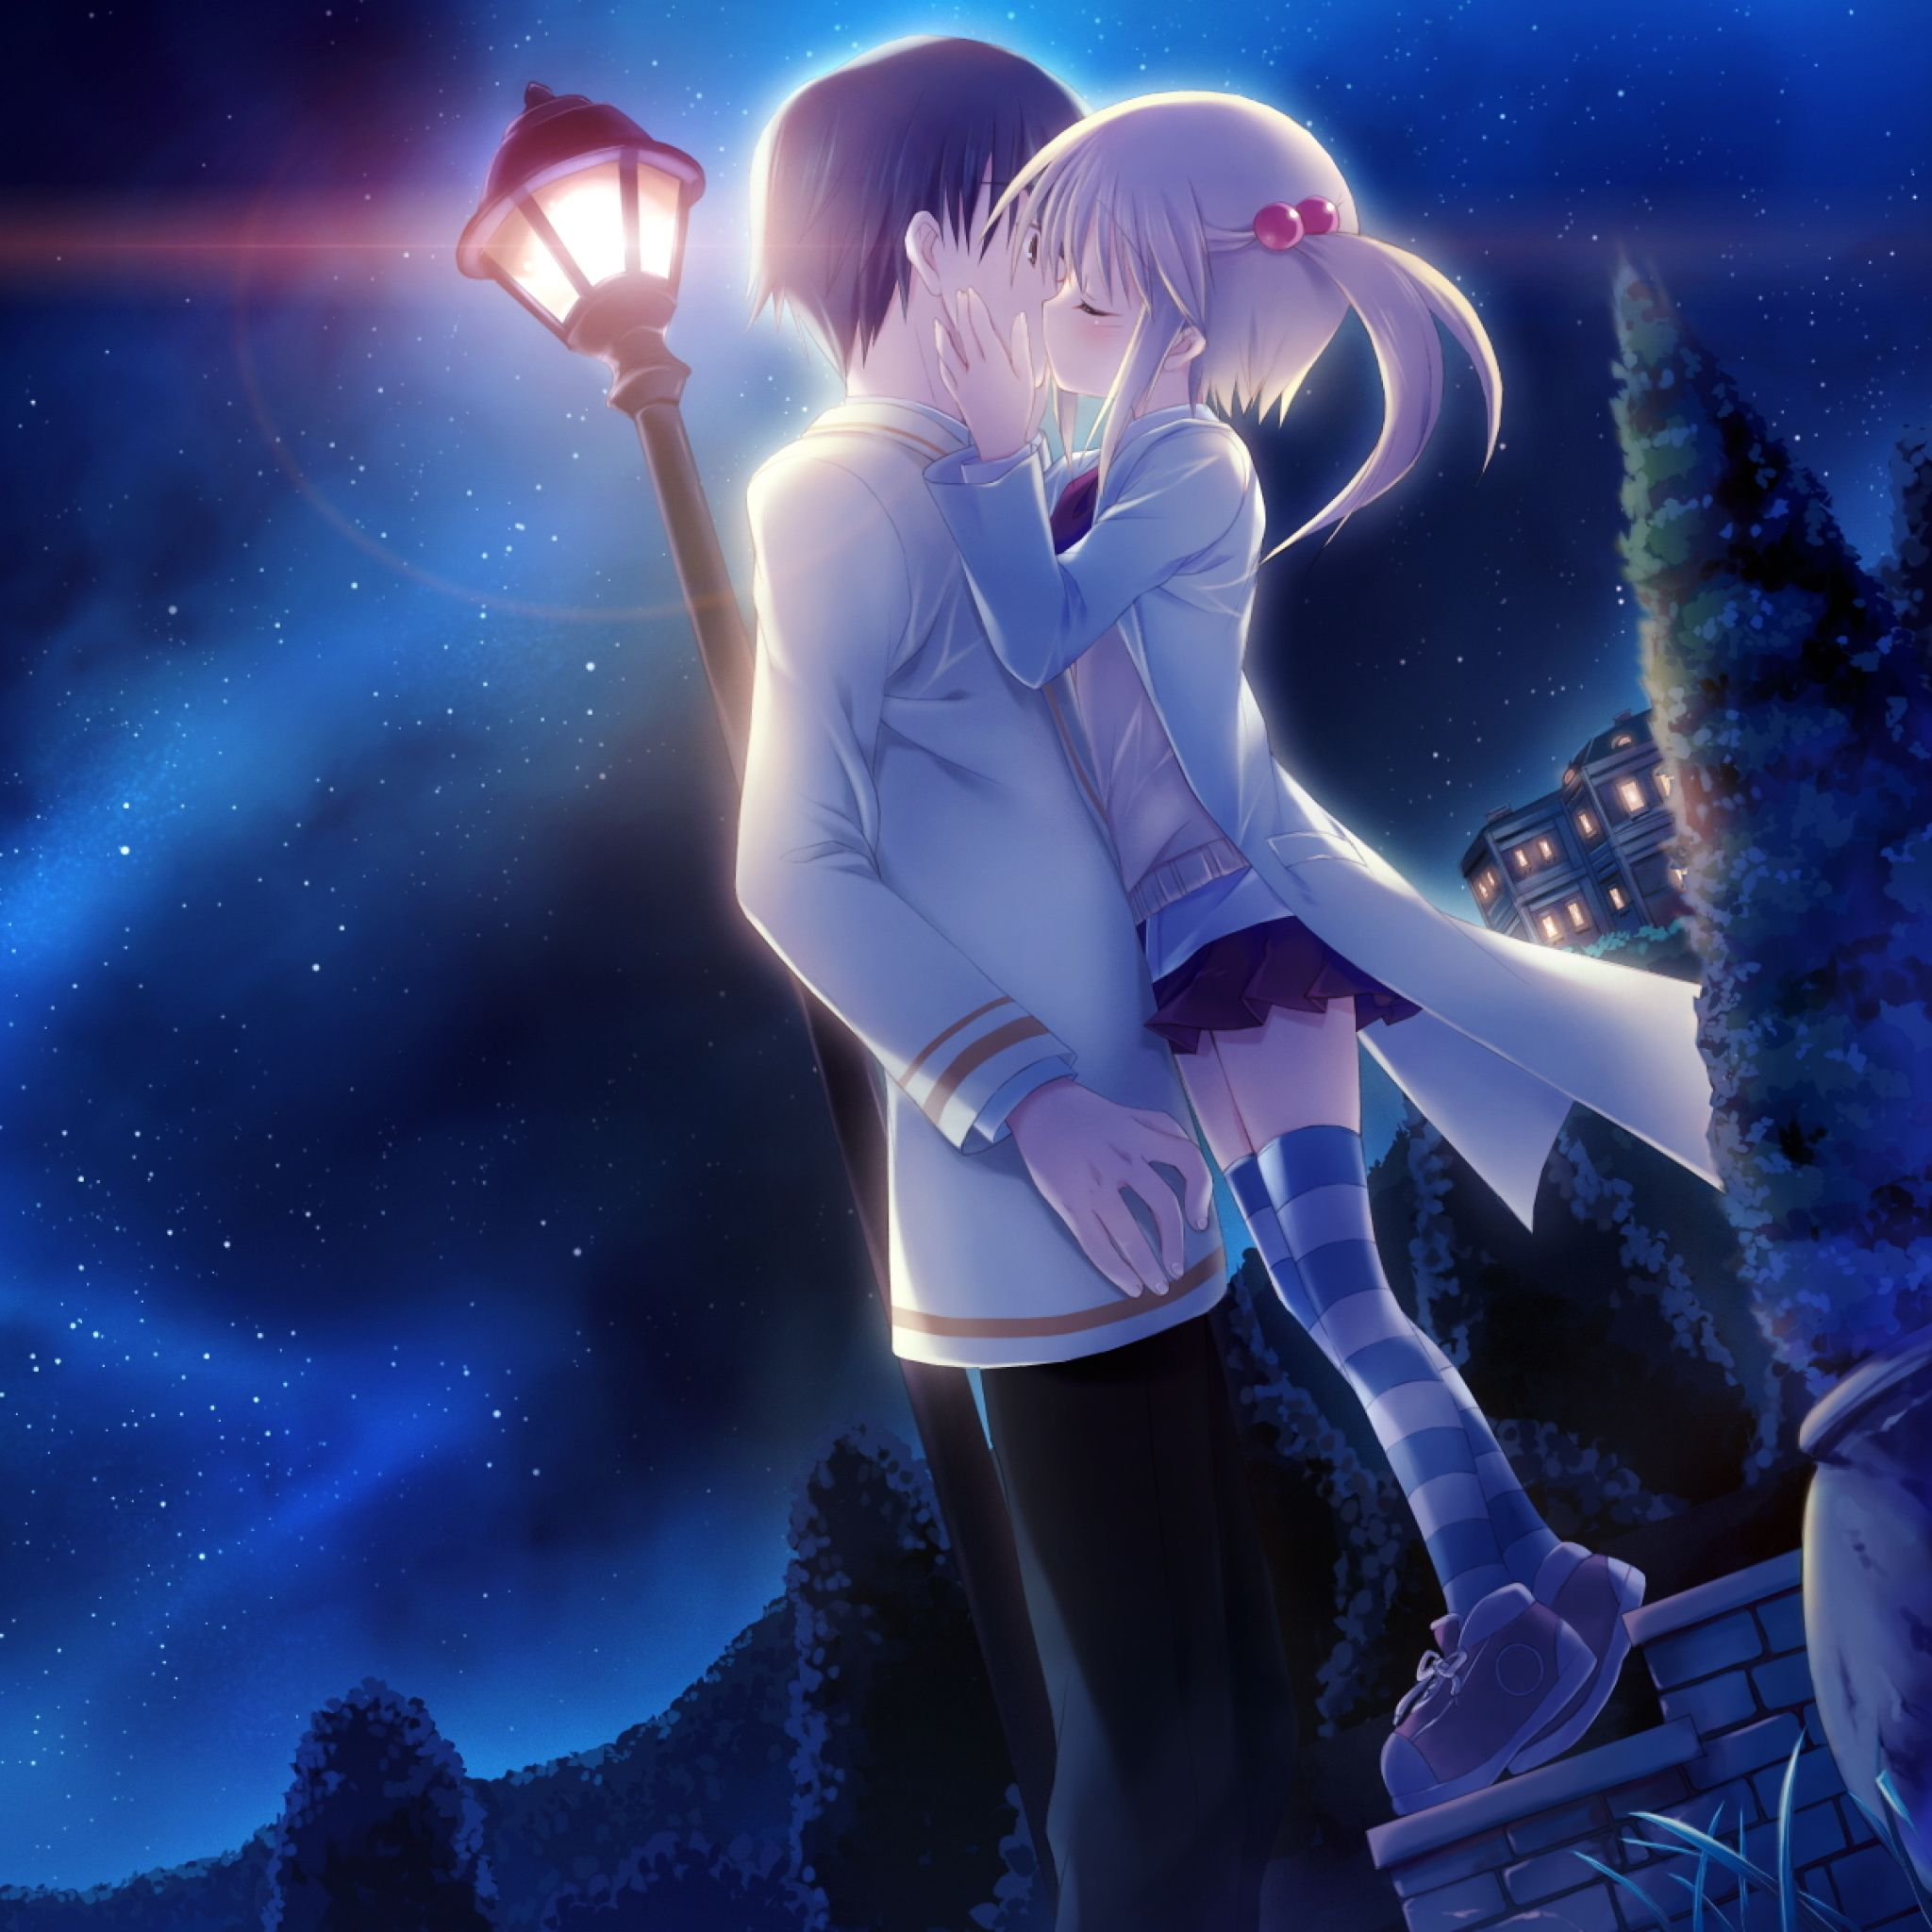 Celestial Night Tap To See More Cute Anime Love Wallpapers Mobile9 Background Images Wallpapers Cute Anime Wallpaper Anime Backgrounds Wallpapers Anime cute wallpaper love